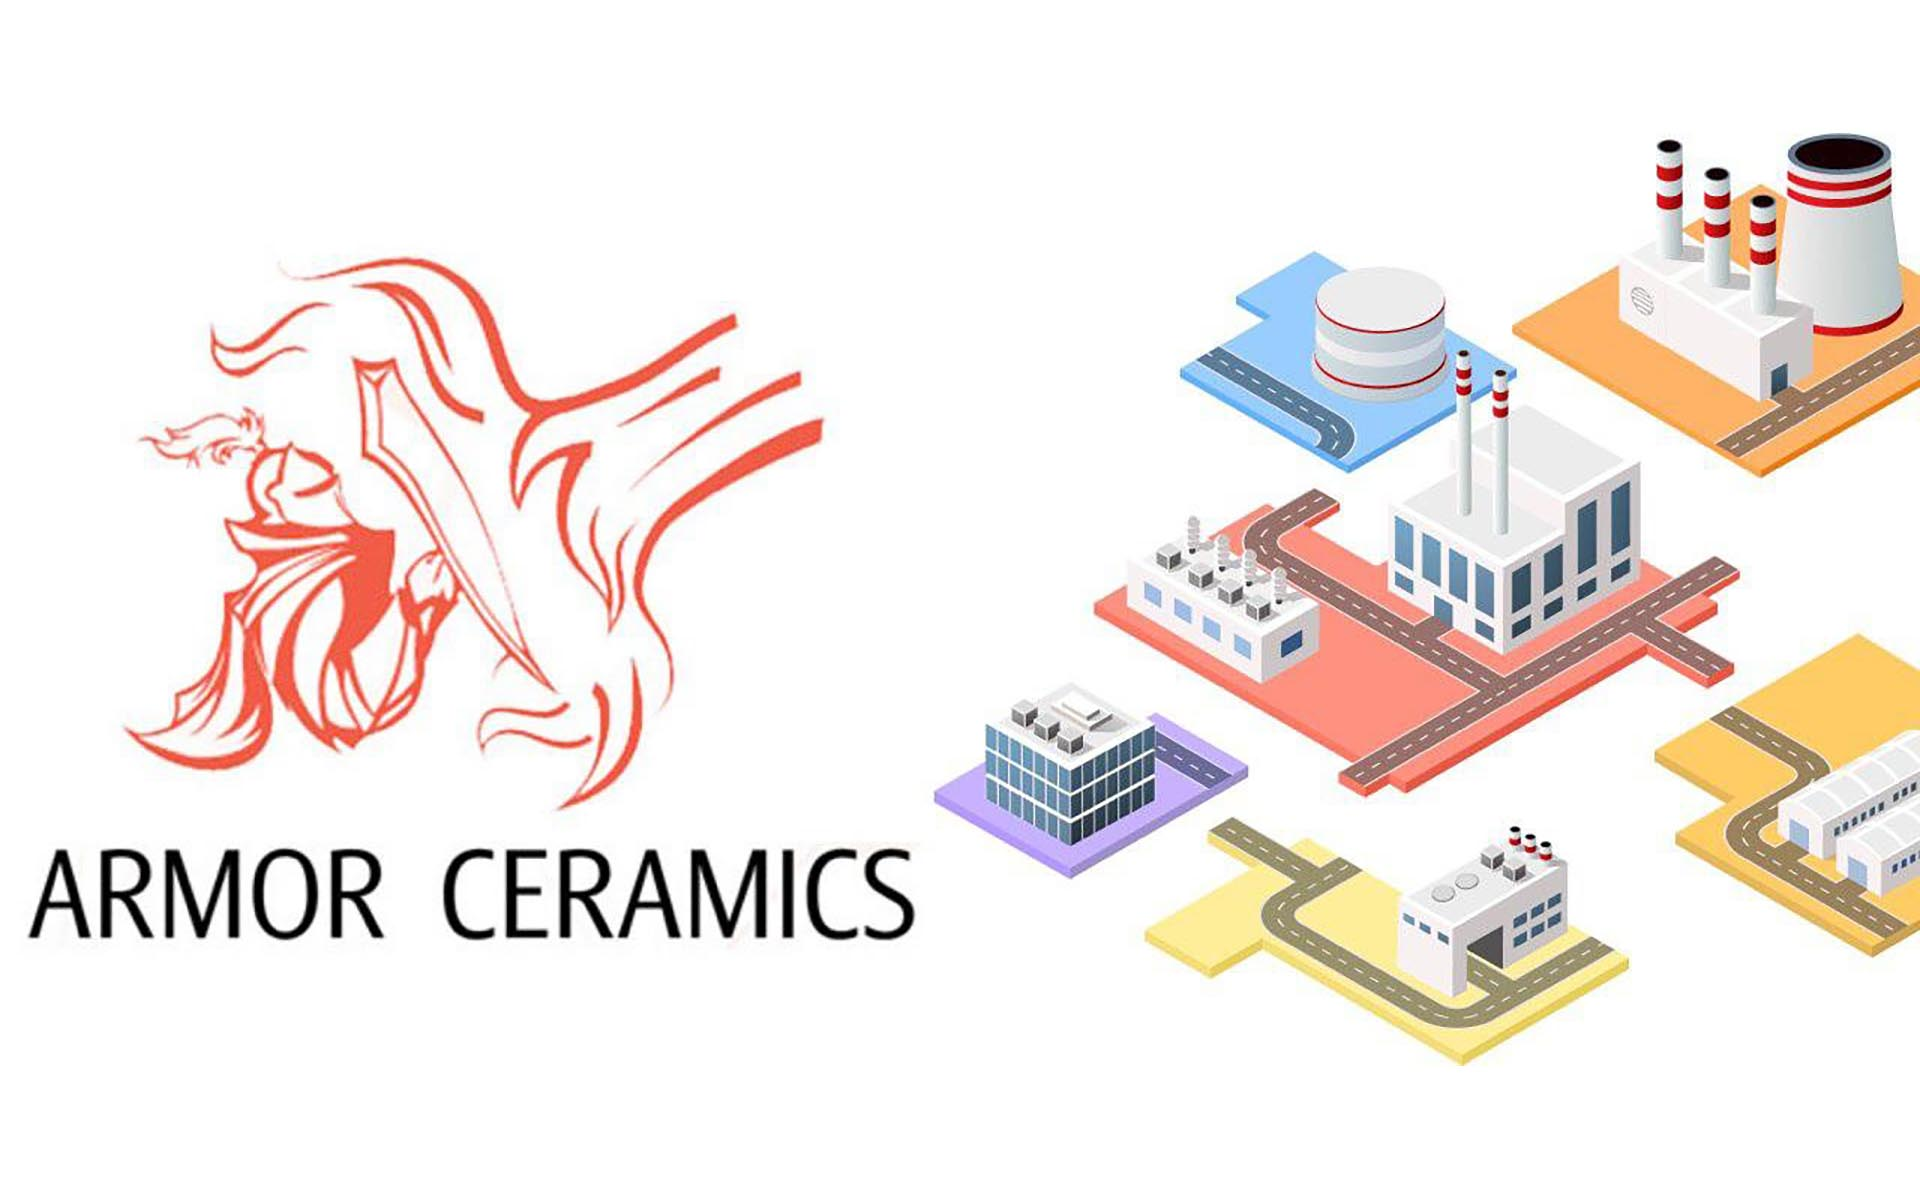 Armor Ceramics Launches Pre-ICO for Blockchain-Based Self Sufficiency in Ukraine's Heavy Industry